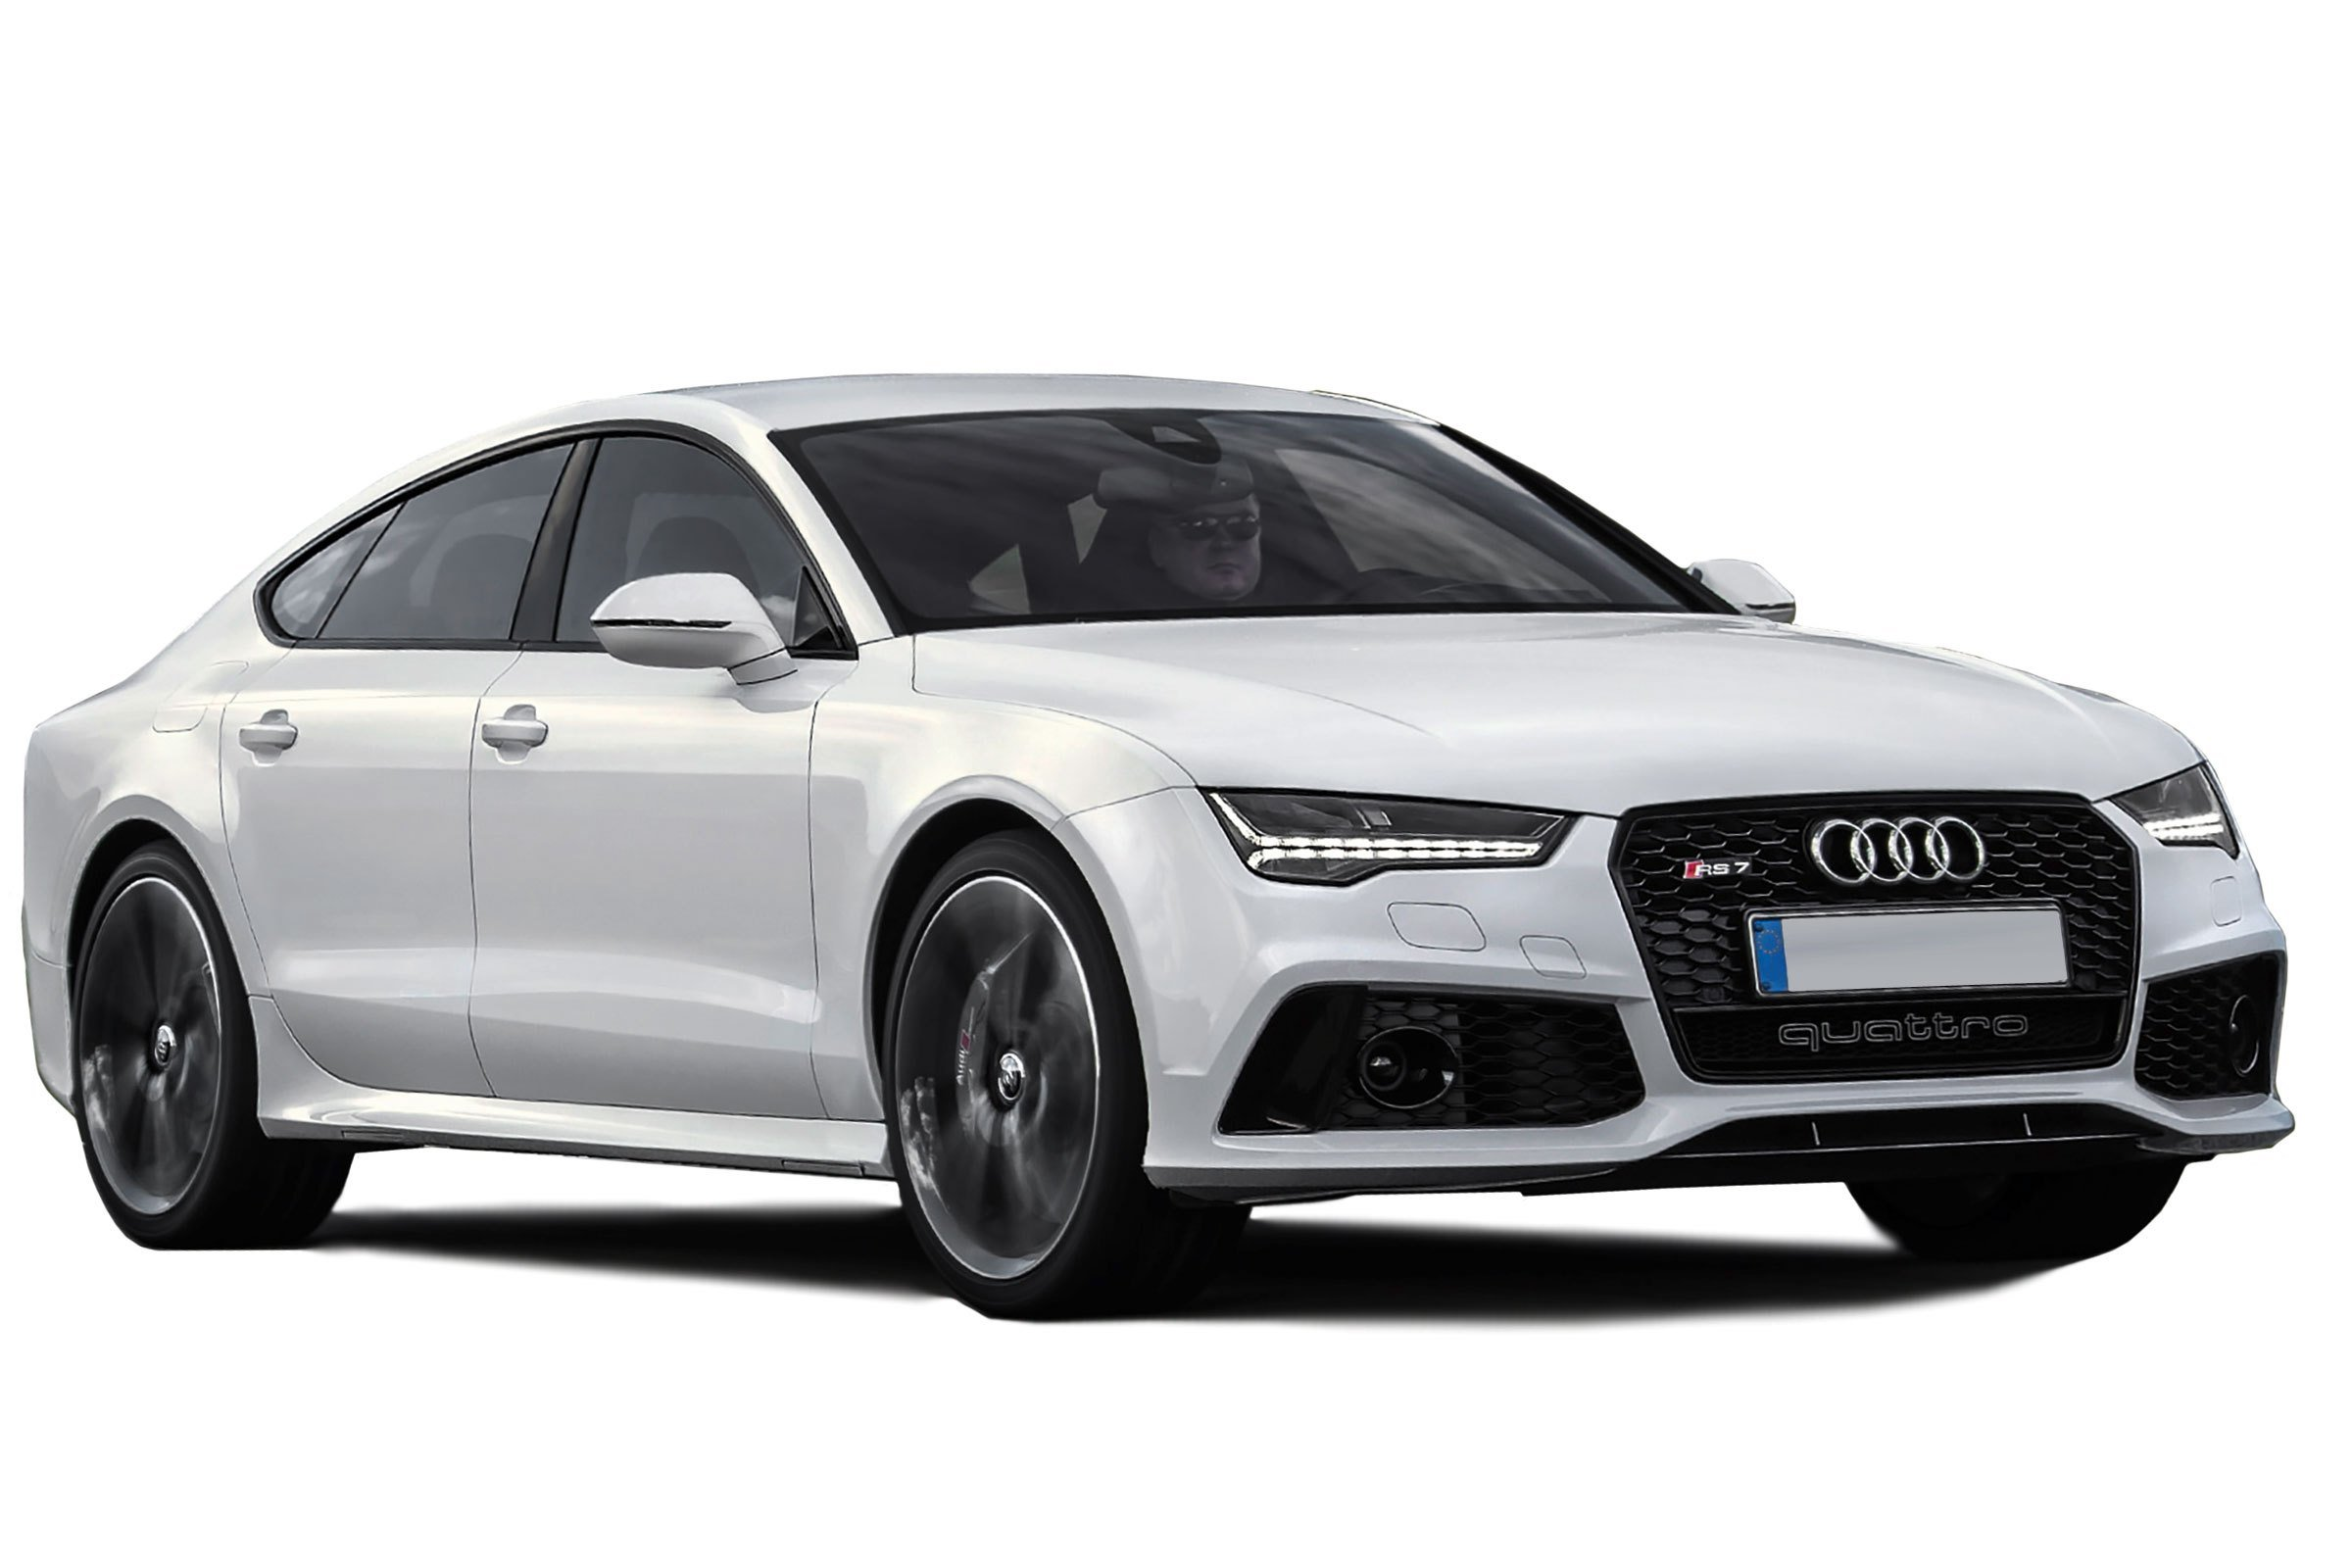 Latest Audi Rs7 Sportback Hatchback Review Carbuyer Free Download